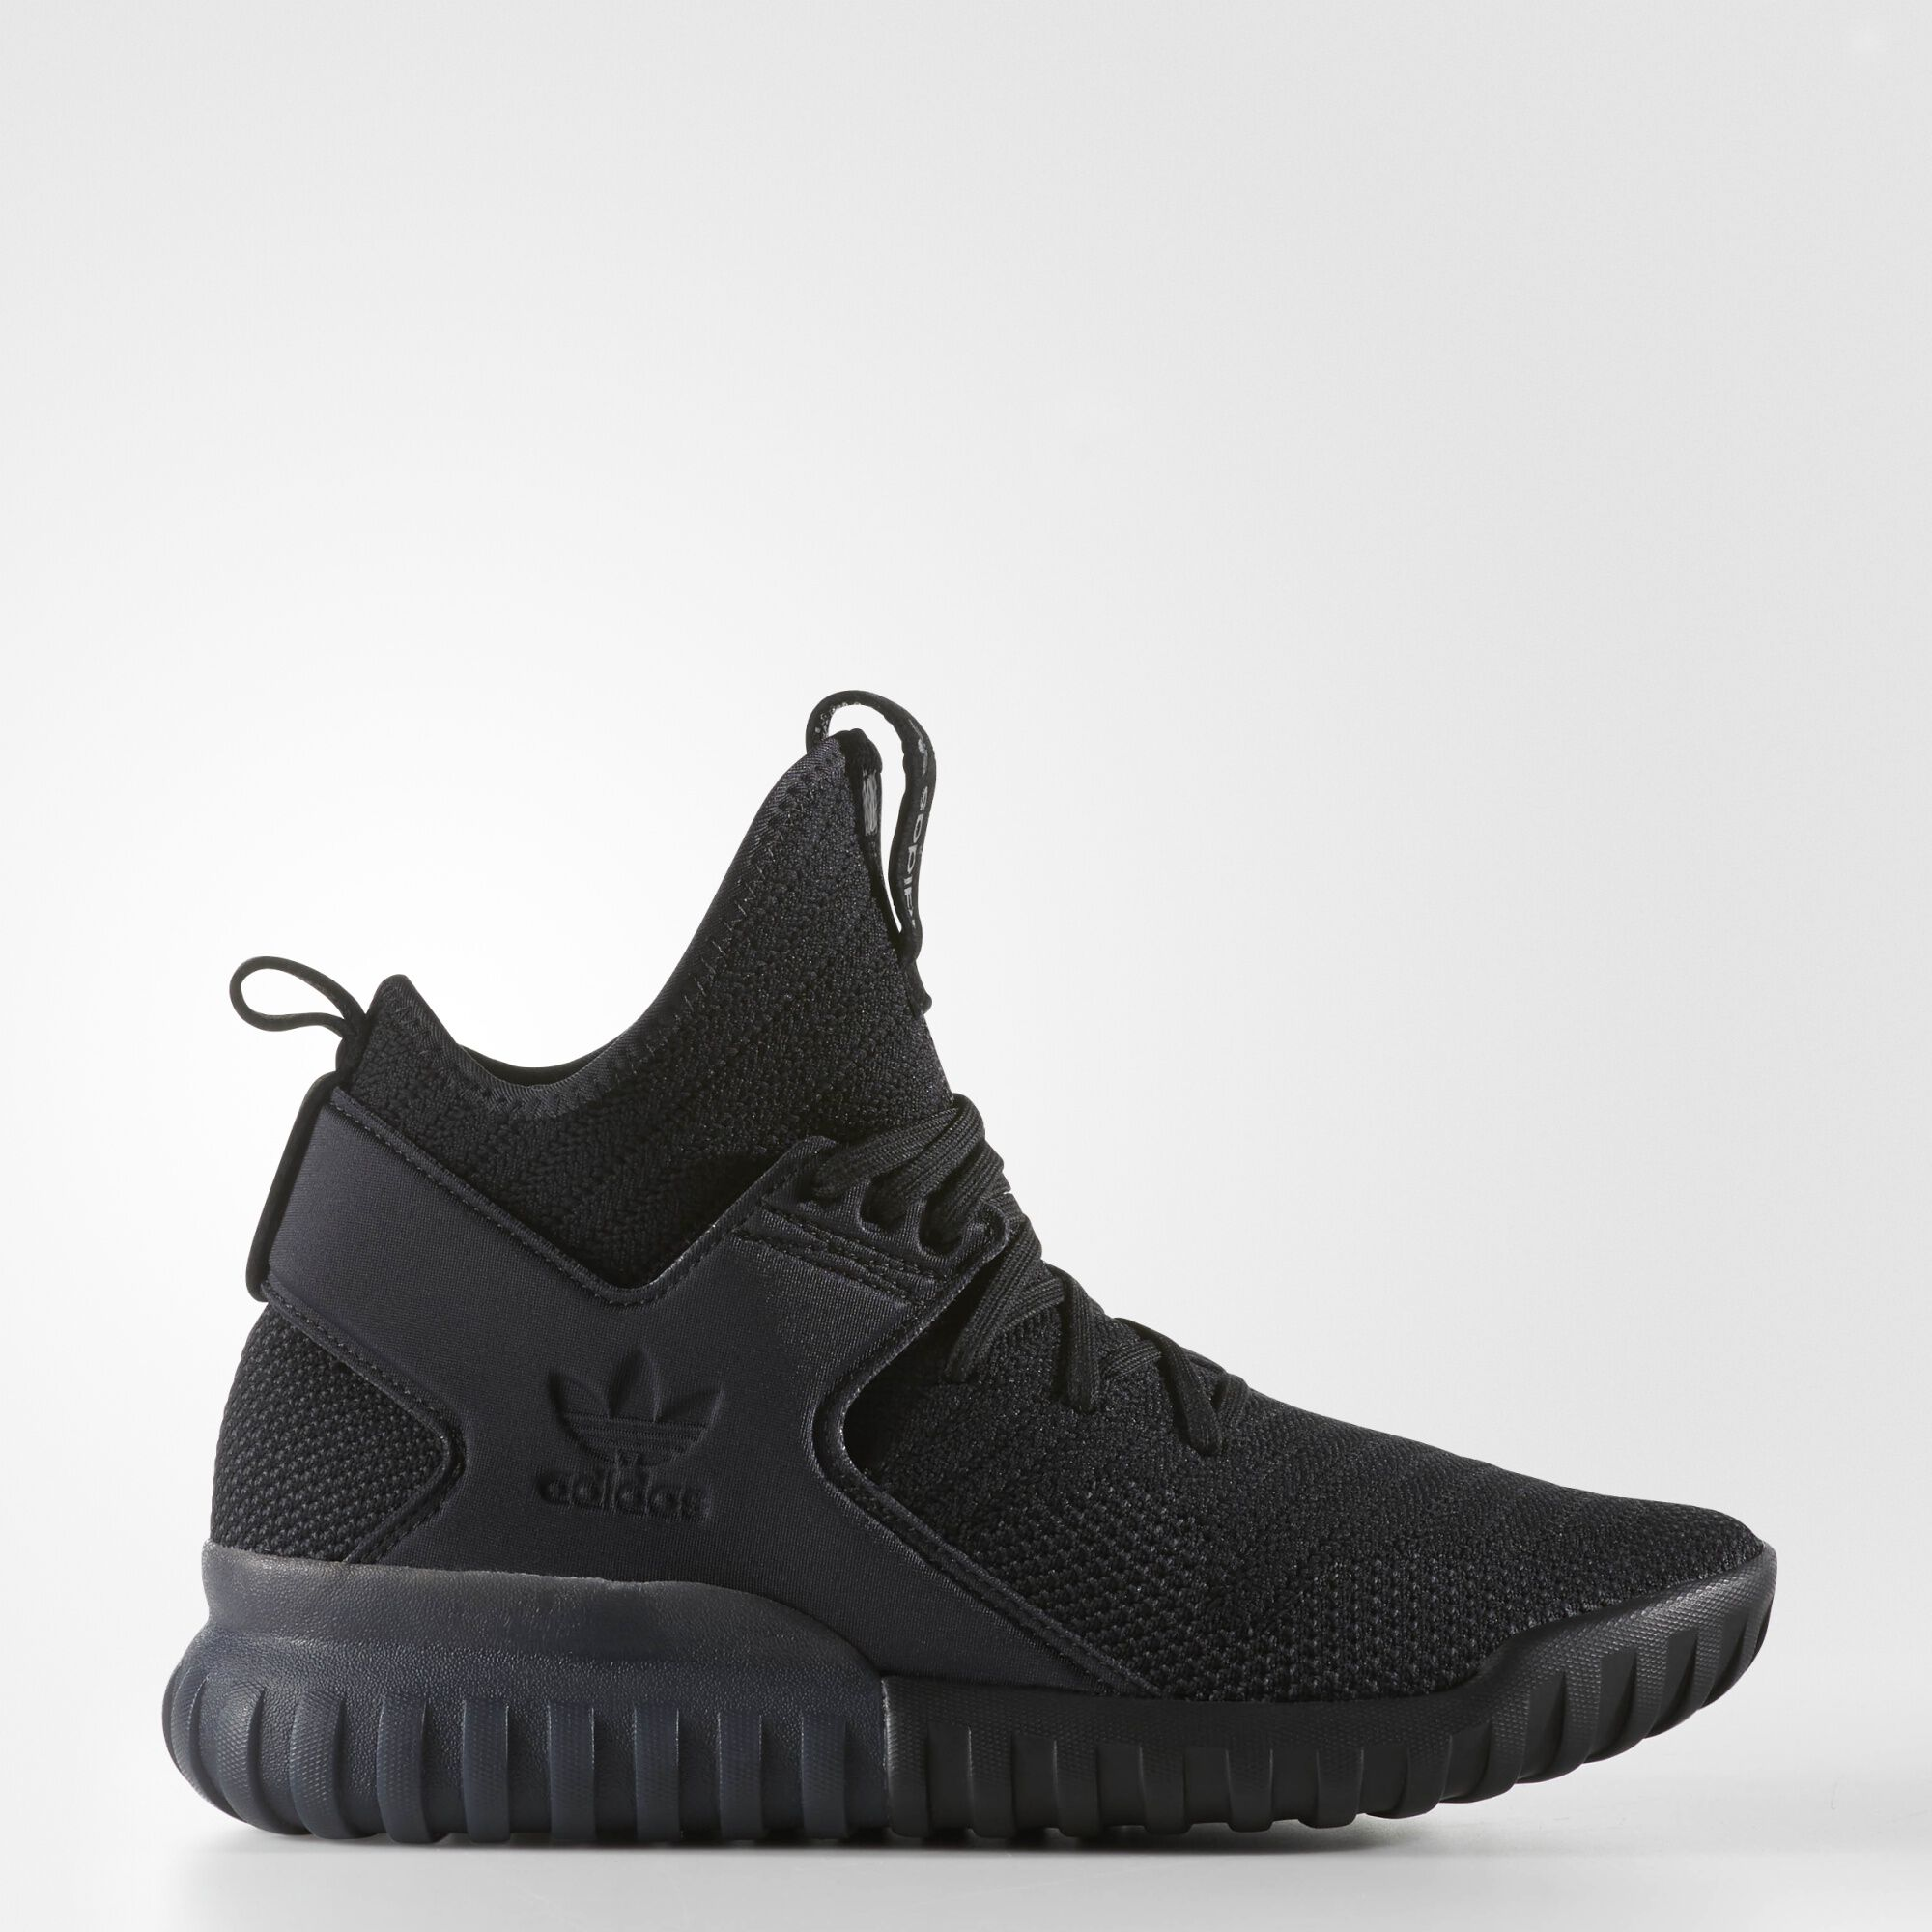 Adidas Originals Tubular Doom New Colorway